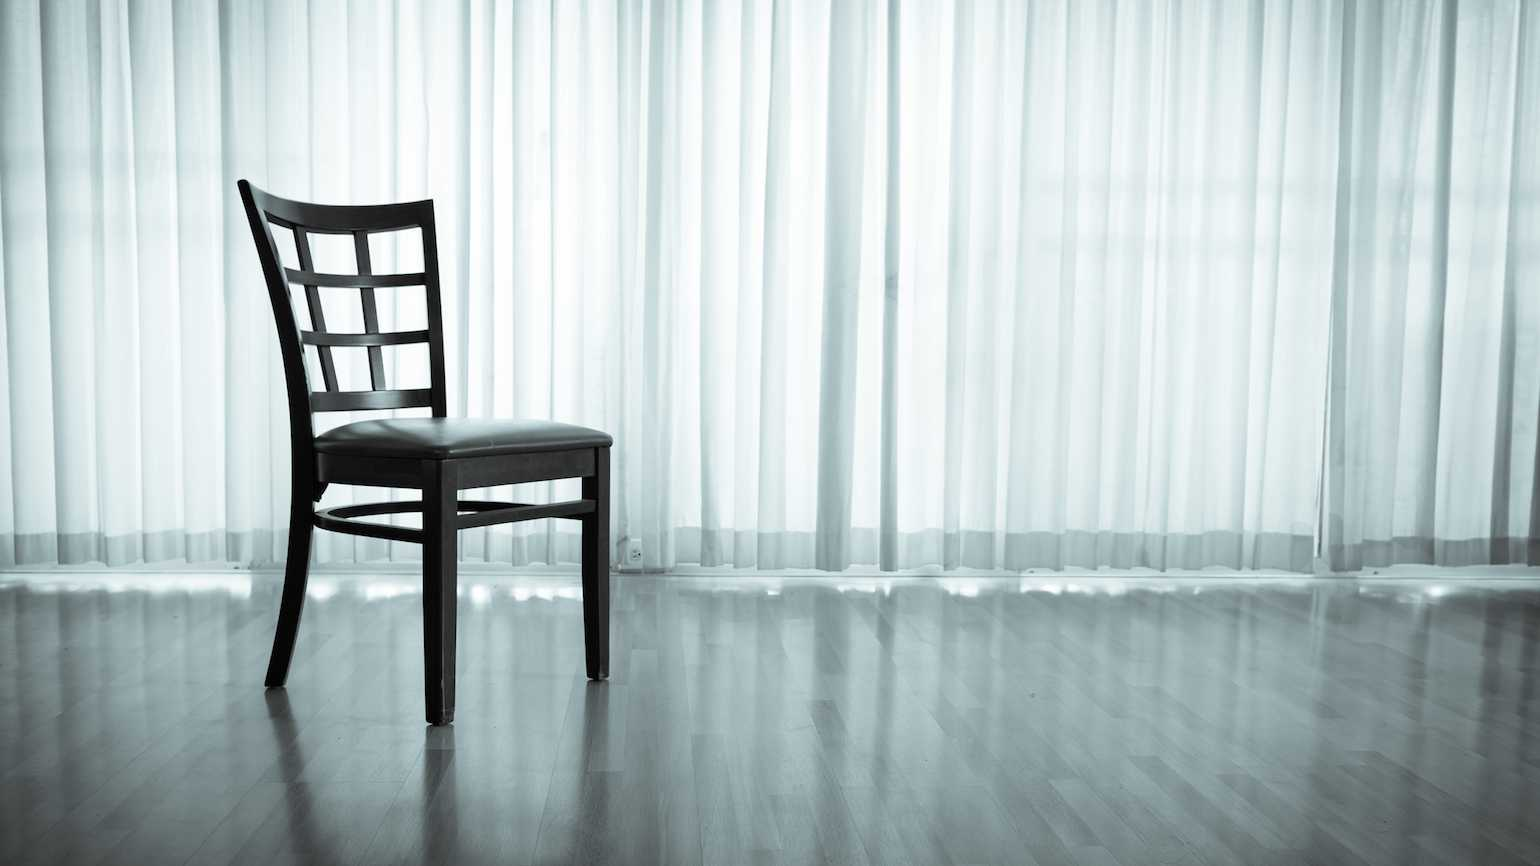 How an empty chair can help you pray